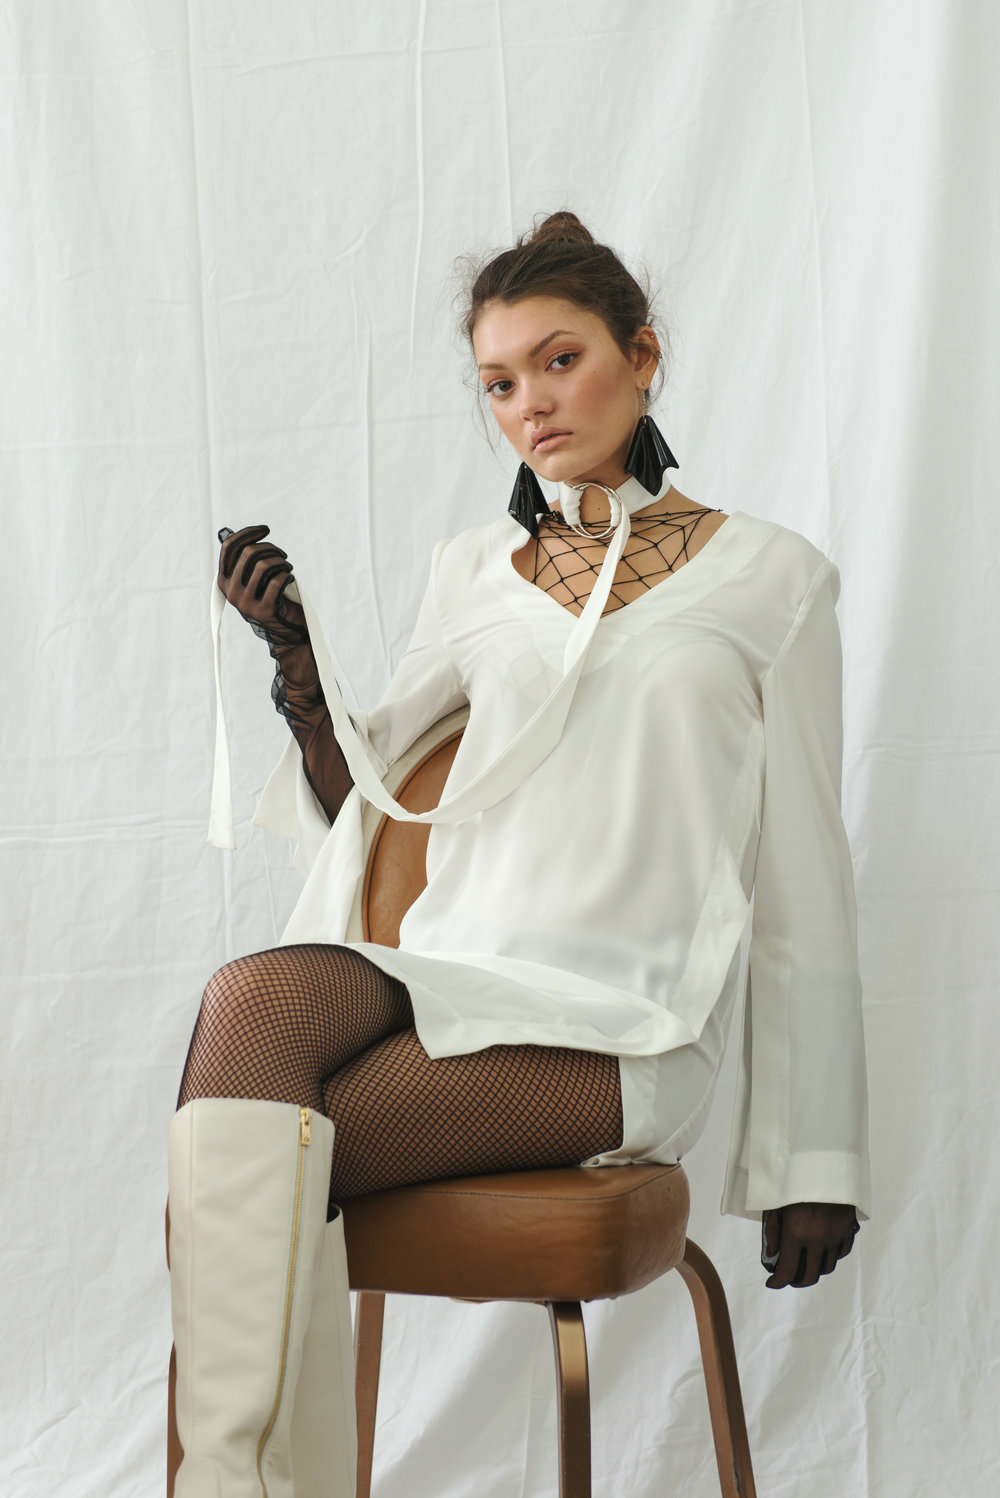 boots  CALVIN KLEIN , dress + gloves VINTAGE, earrings STYLIST'S ARCHIVE